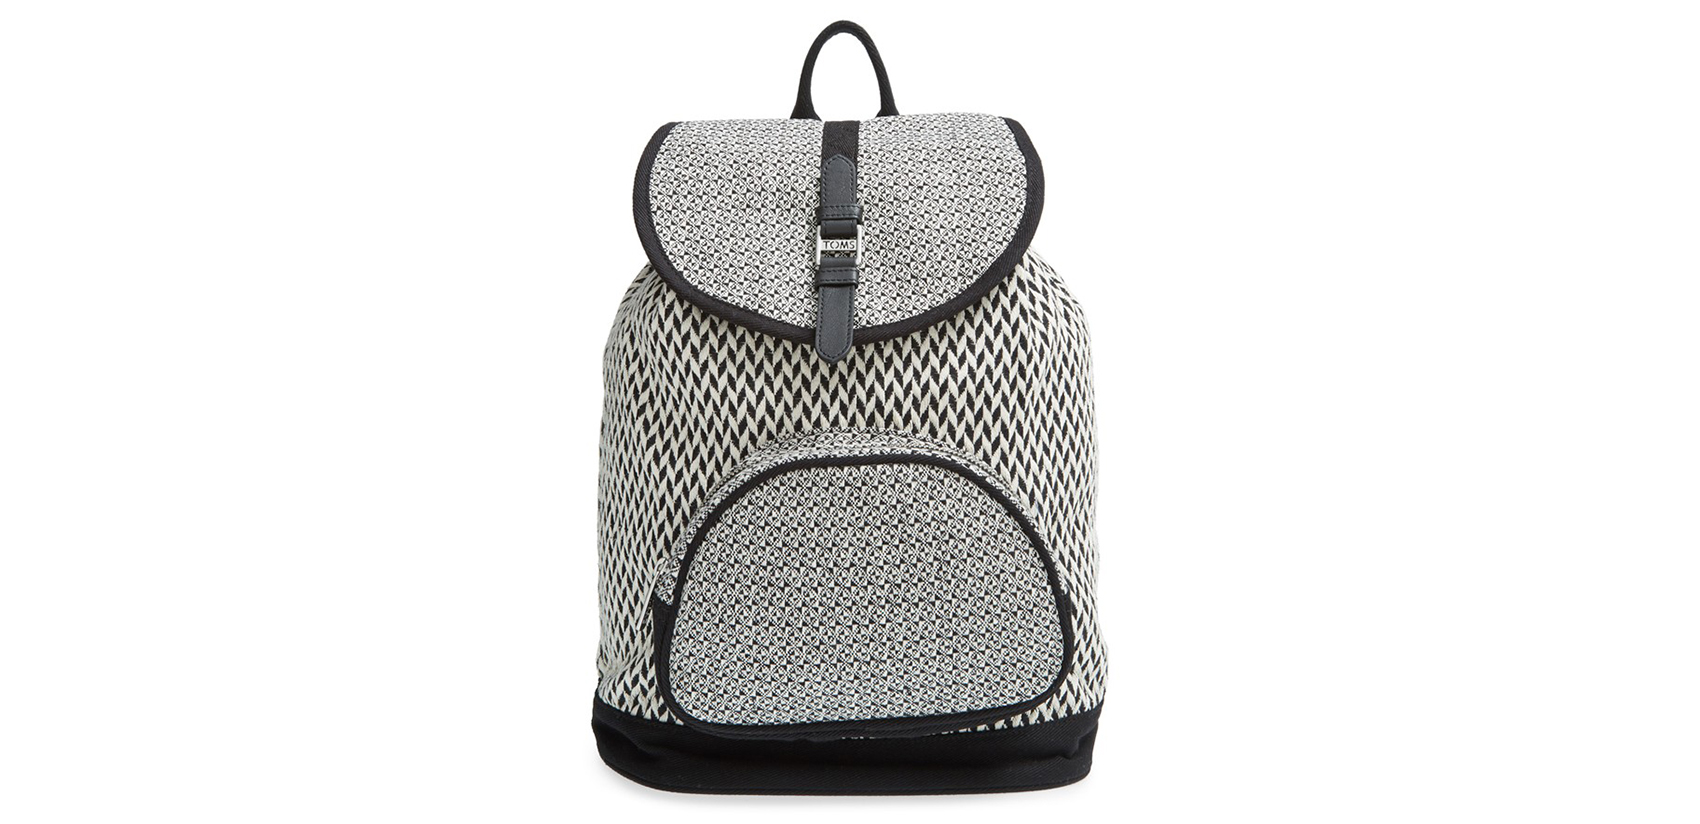 710f90f6284 10 Stylish School Bags for College Students | Real Simple